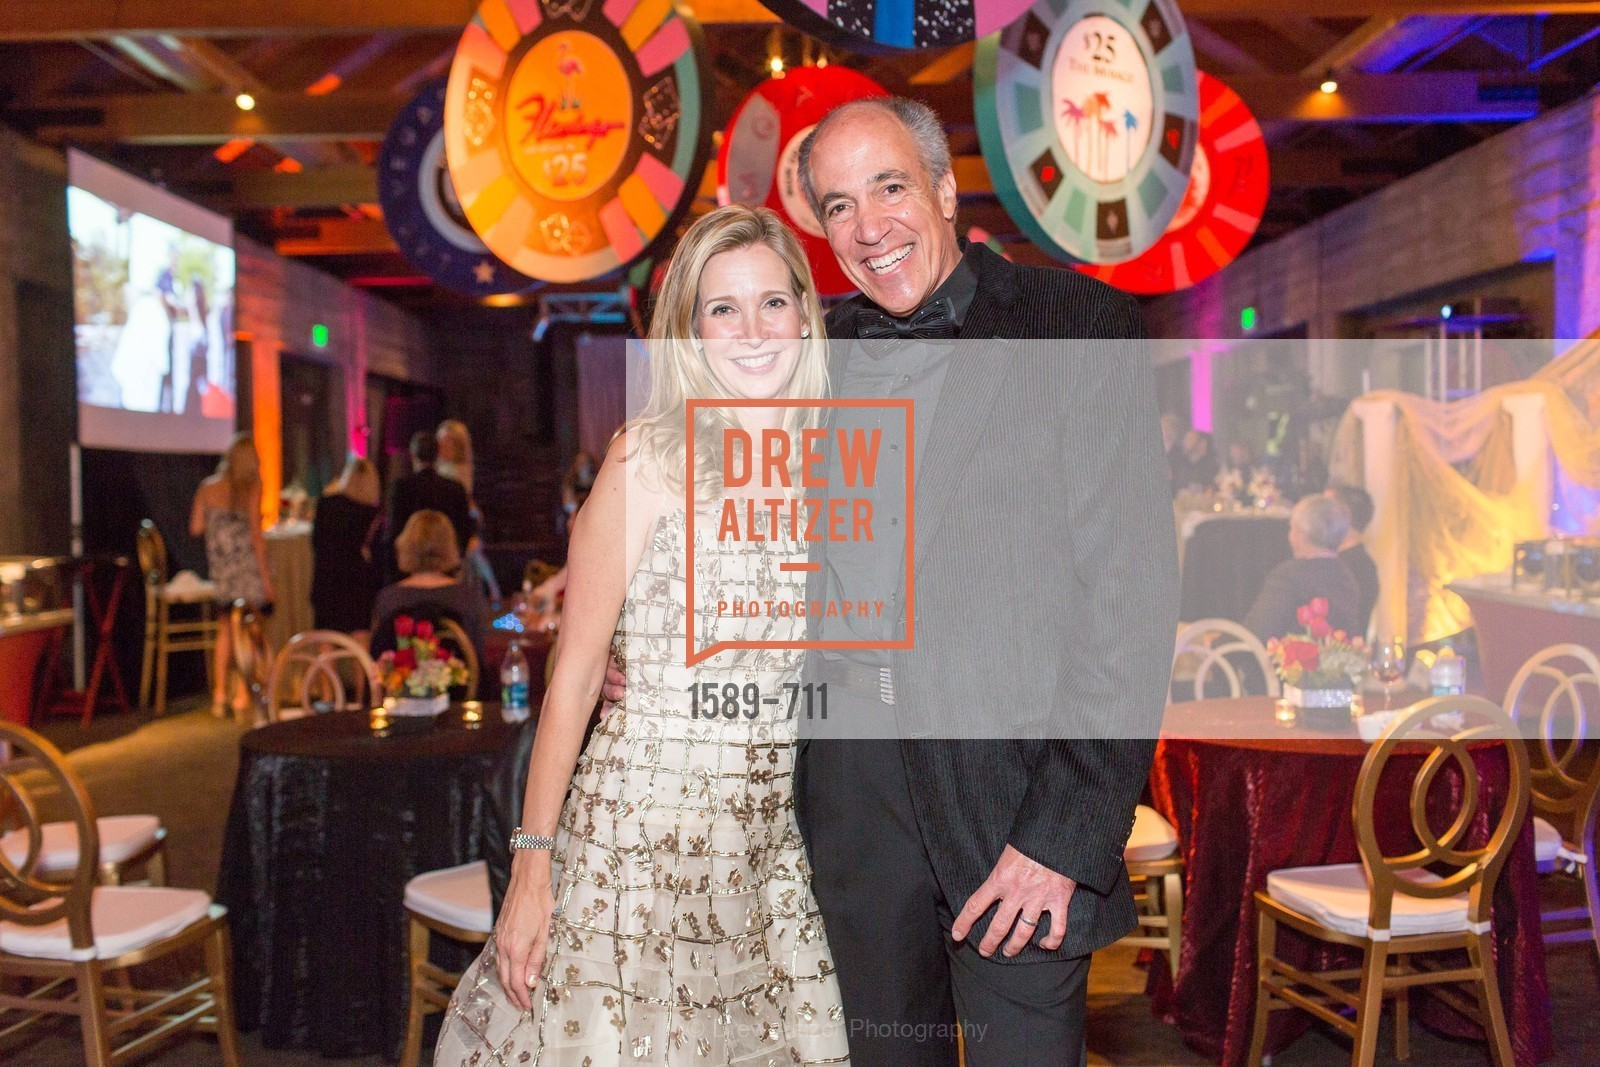 Extras, COURTNEY and JIM Forever Party, May 8th, 2015, Photo,Drew Altizer, Drew Altizer Photography, full-service agency, private events, San Francisco photographer, photographer california